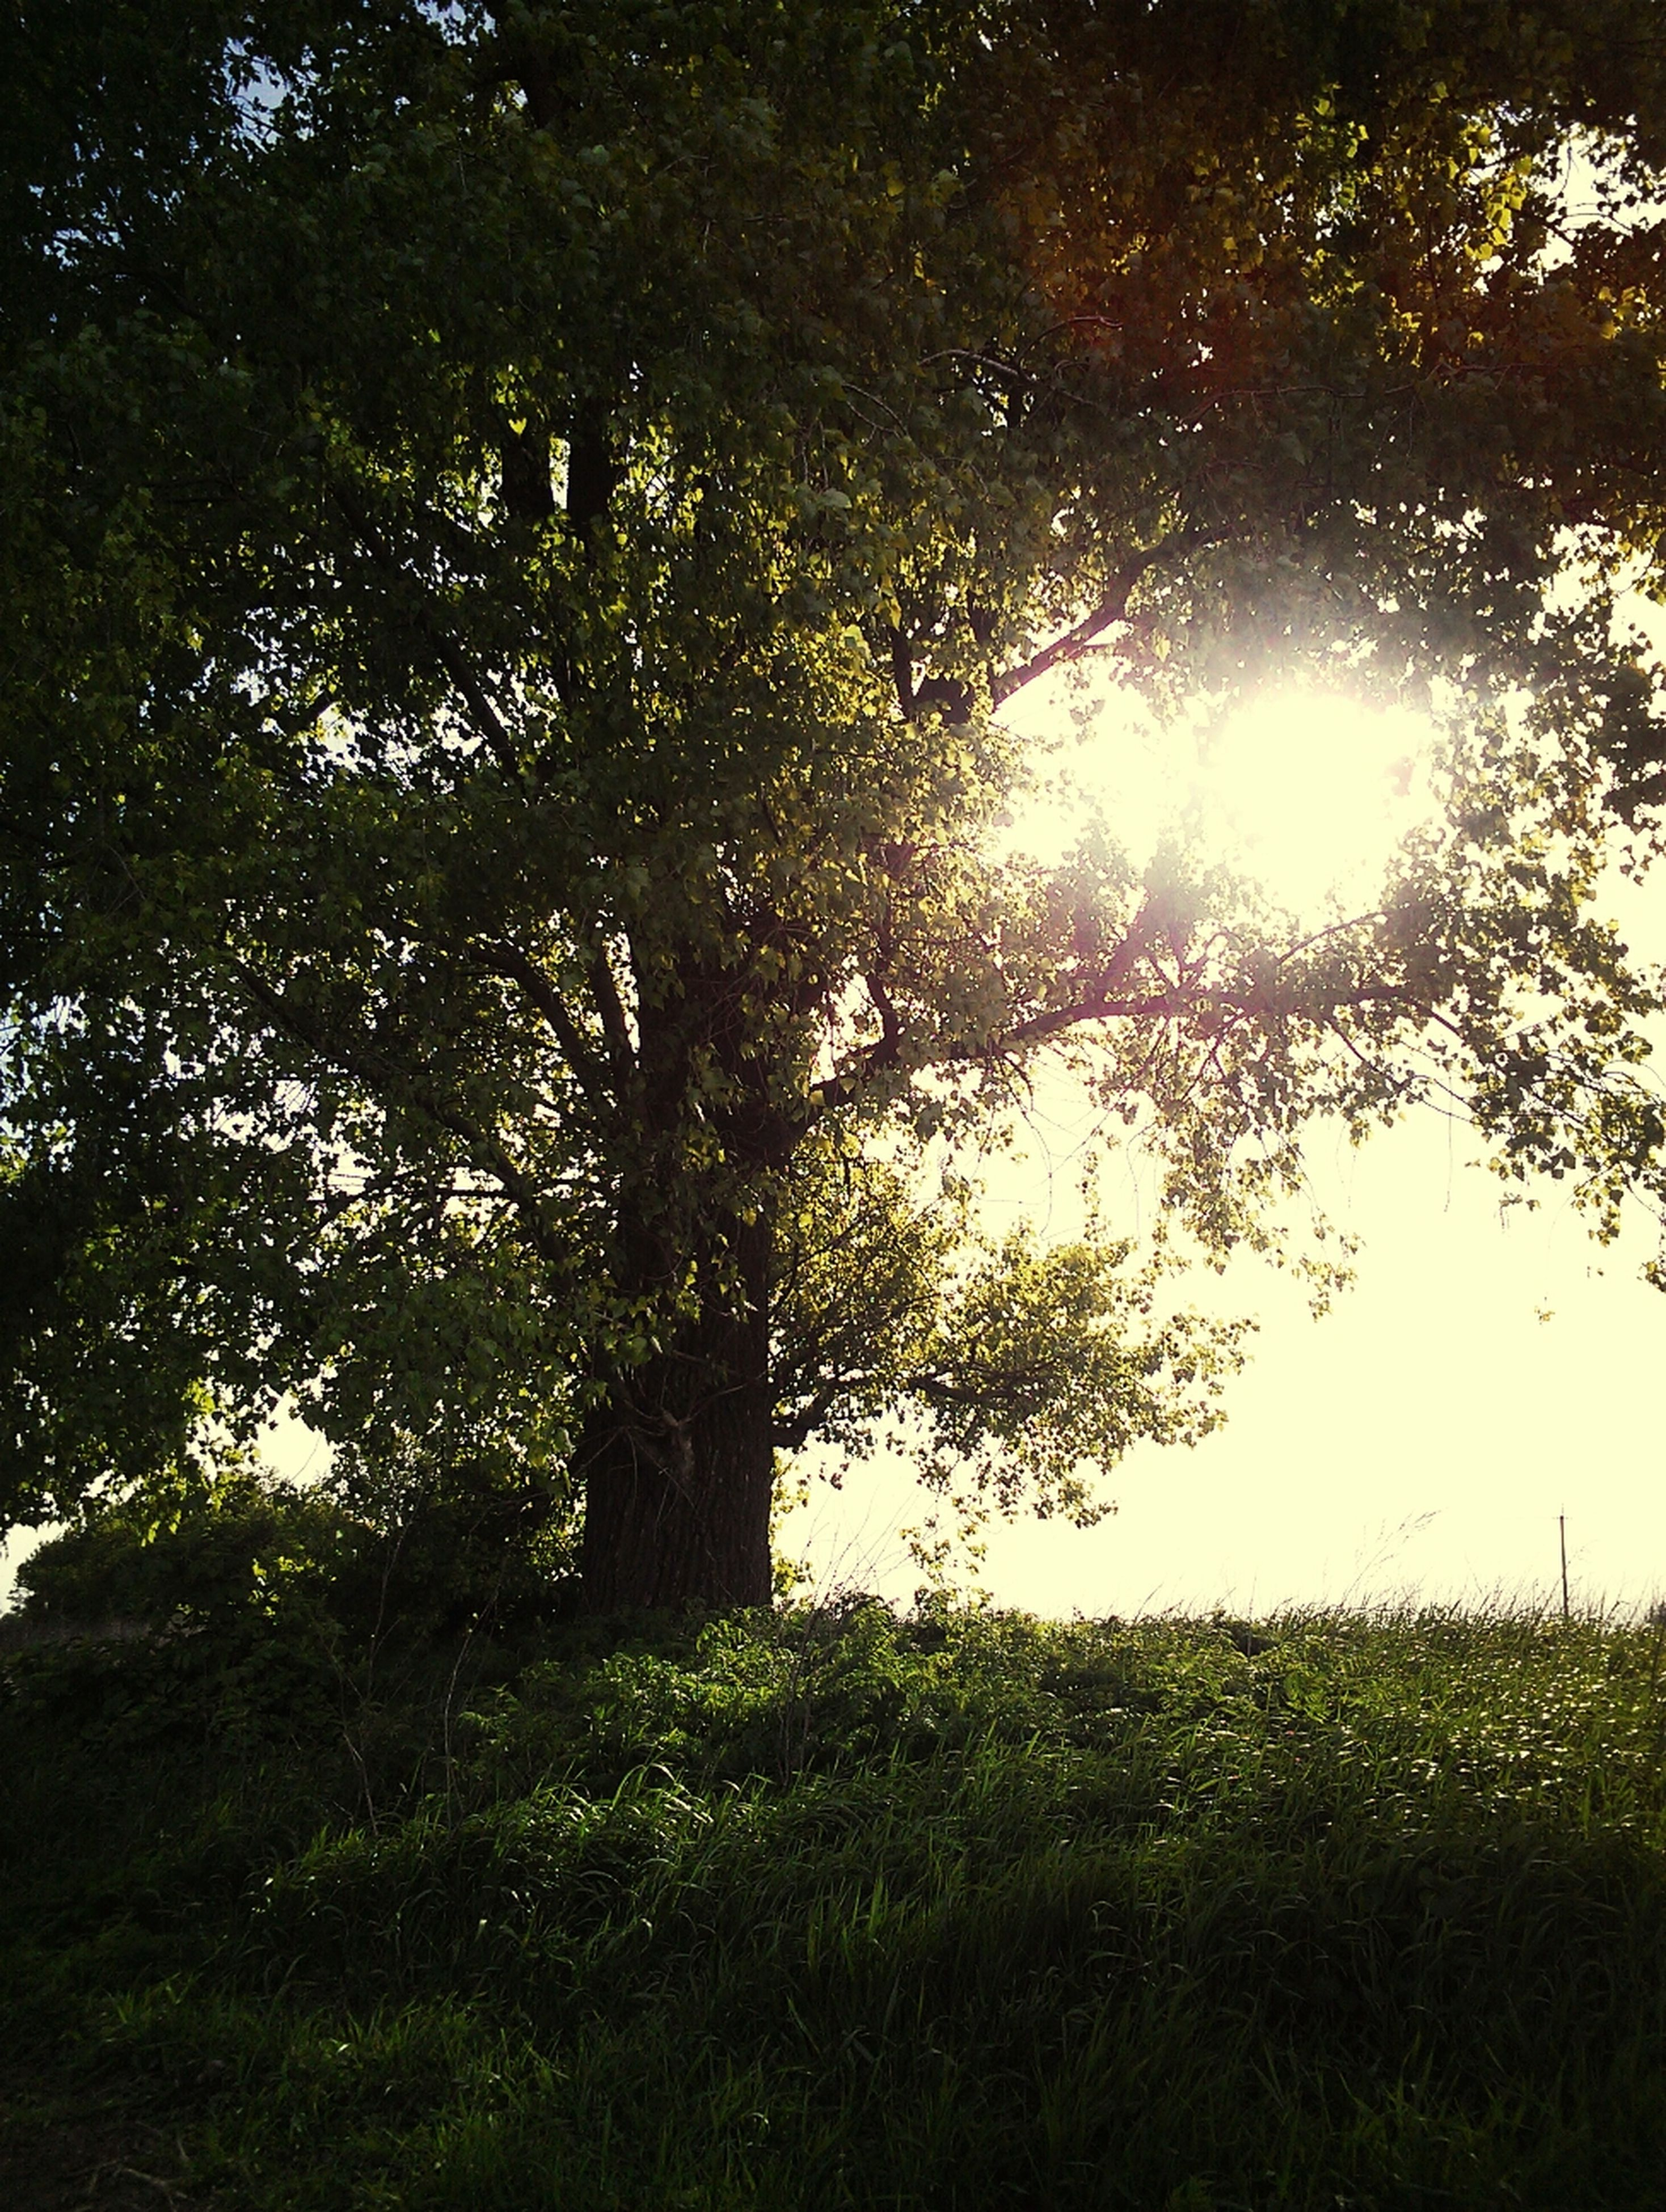 tree, sun, tranquility, growth, sunlight, grass, beauty in nature, sunbeam, nature, tranquil scene, green color, lens flare, branch, scenics, field, sky, grassy, day, sunny, outdoors